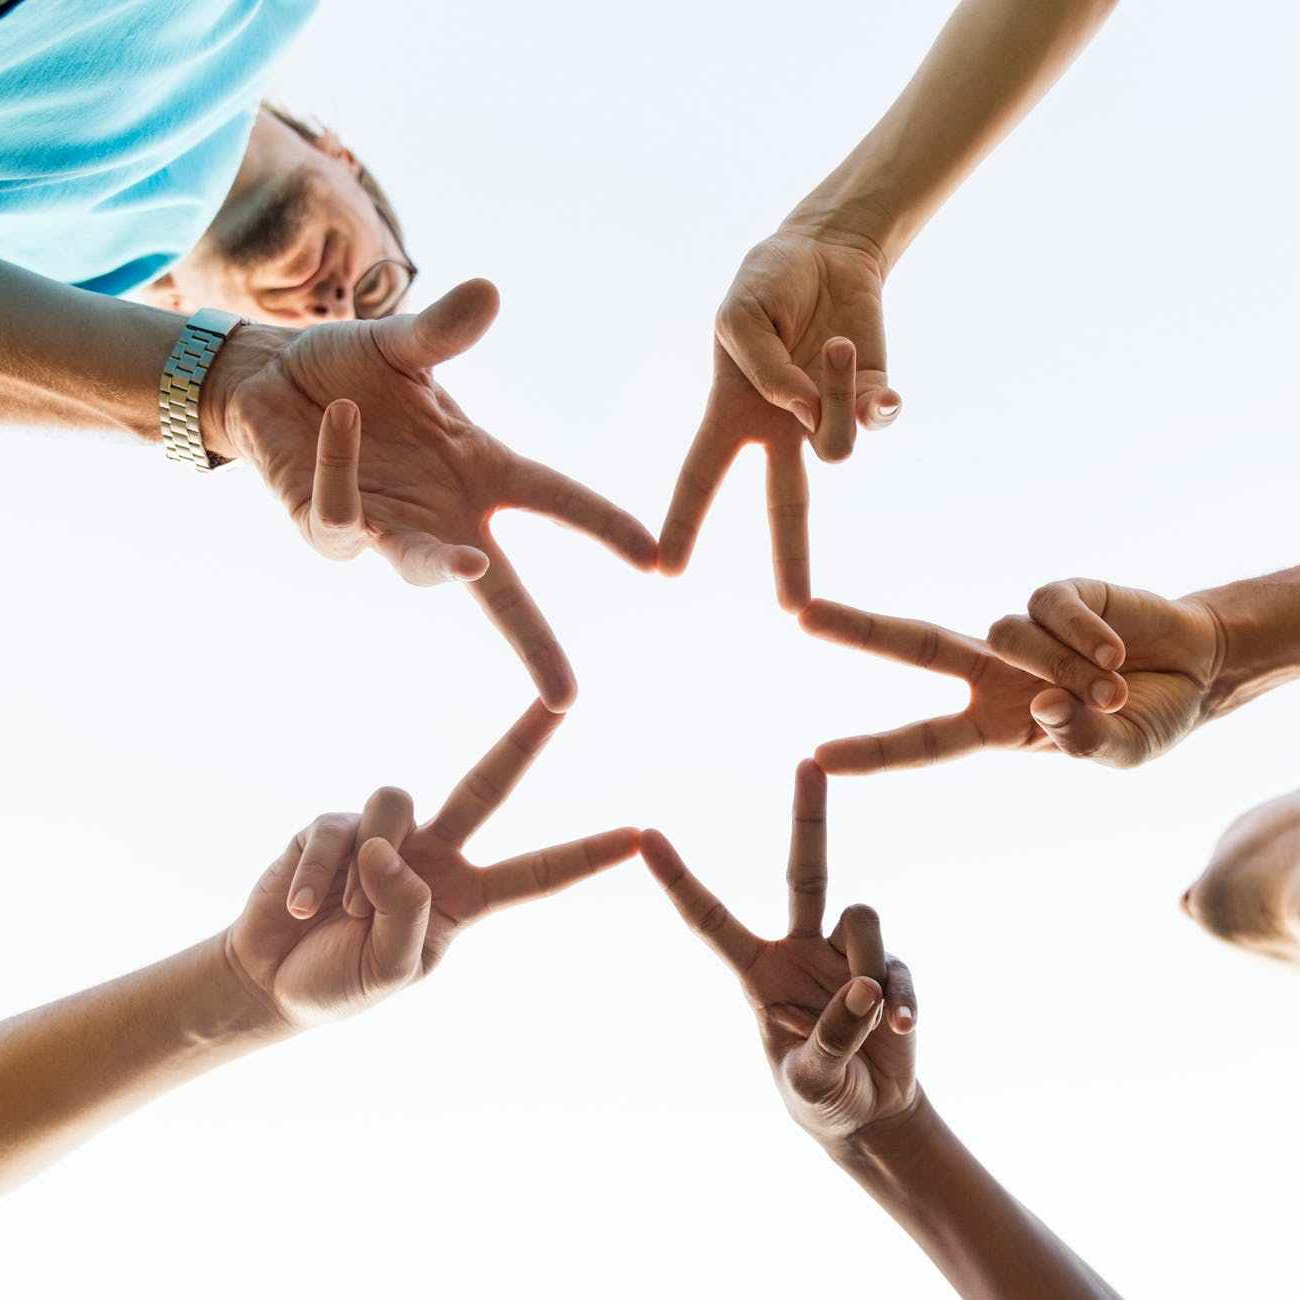 group of people doing star handsign